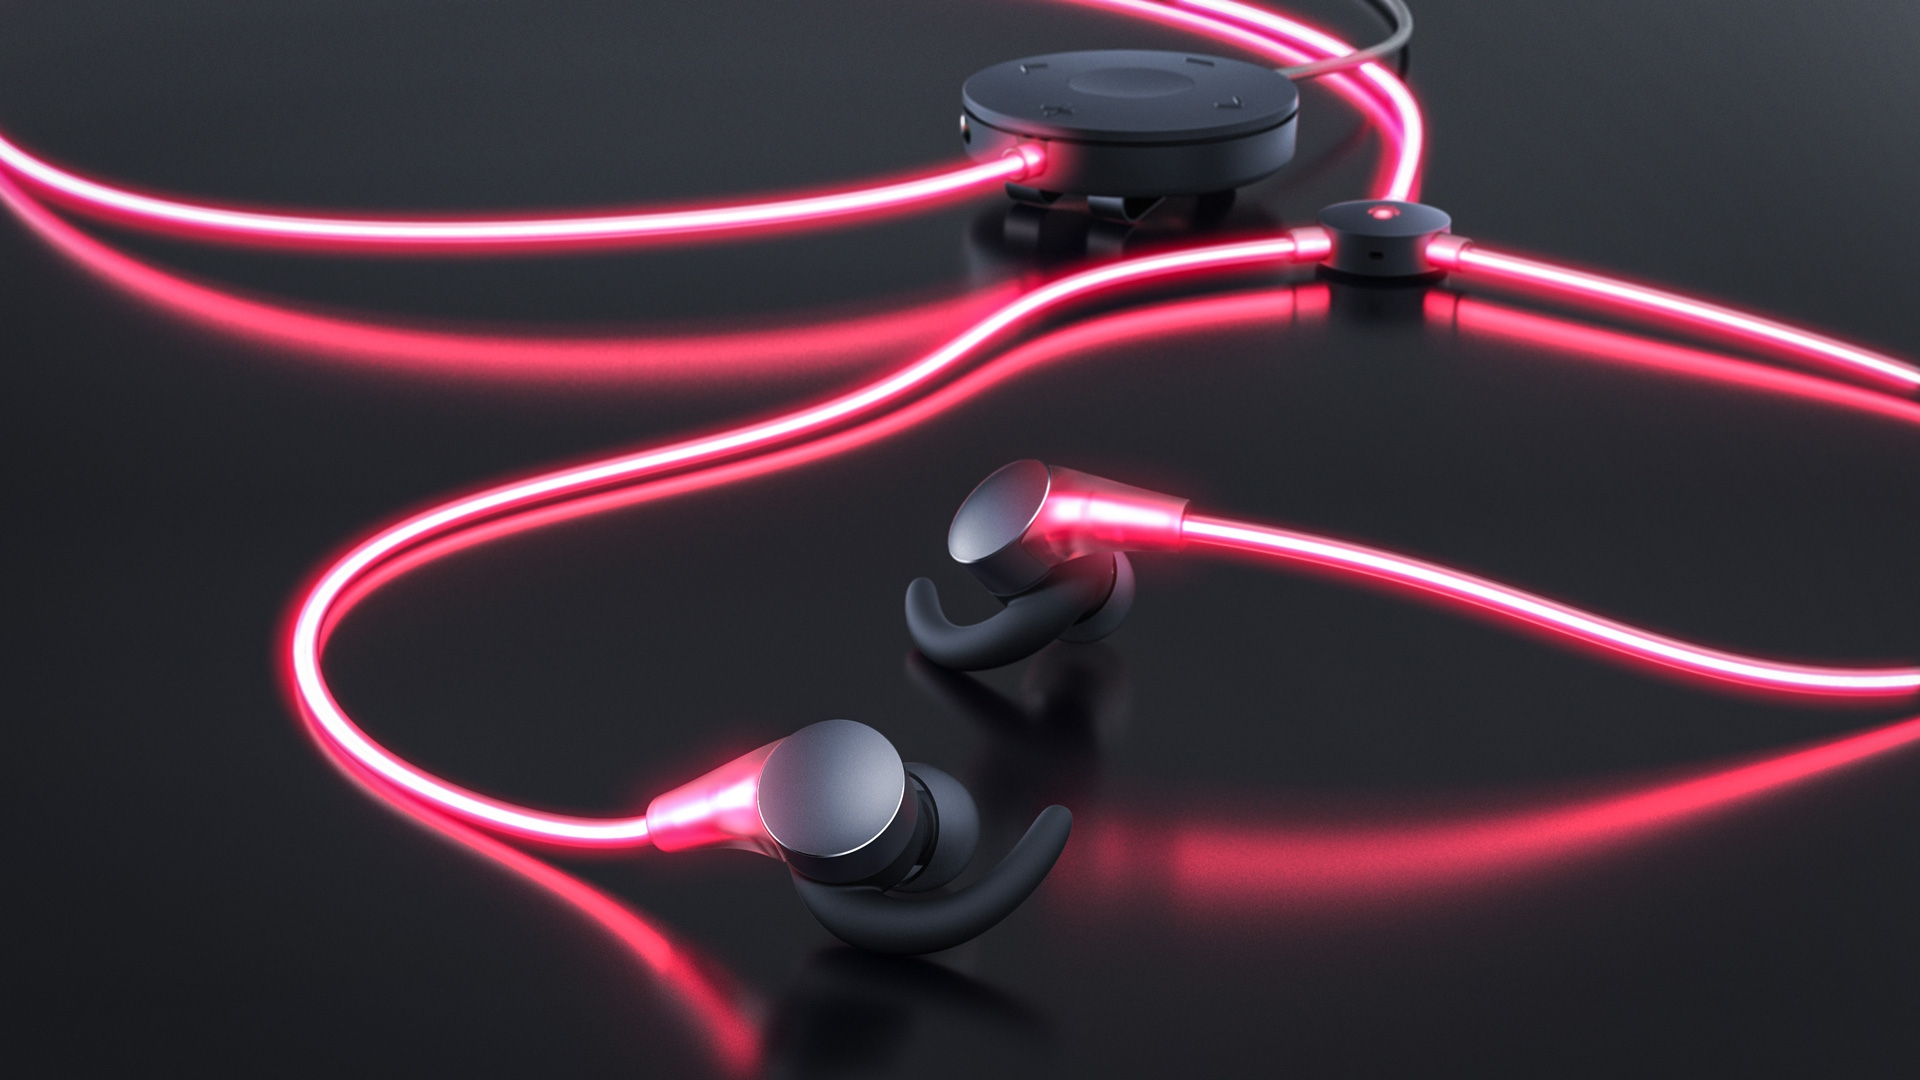 Glow Headphones European Electrical Plug Wiring Schematic Also Headphone Color Lasers